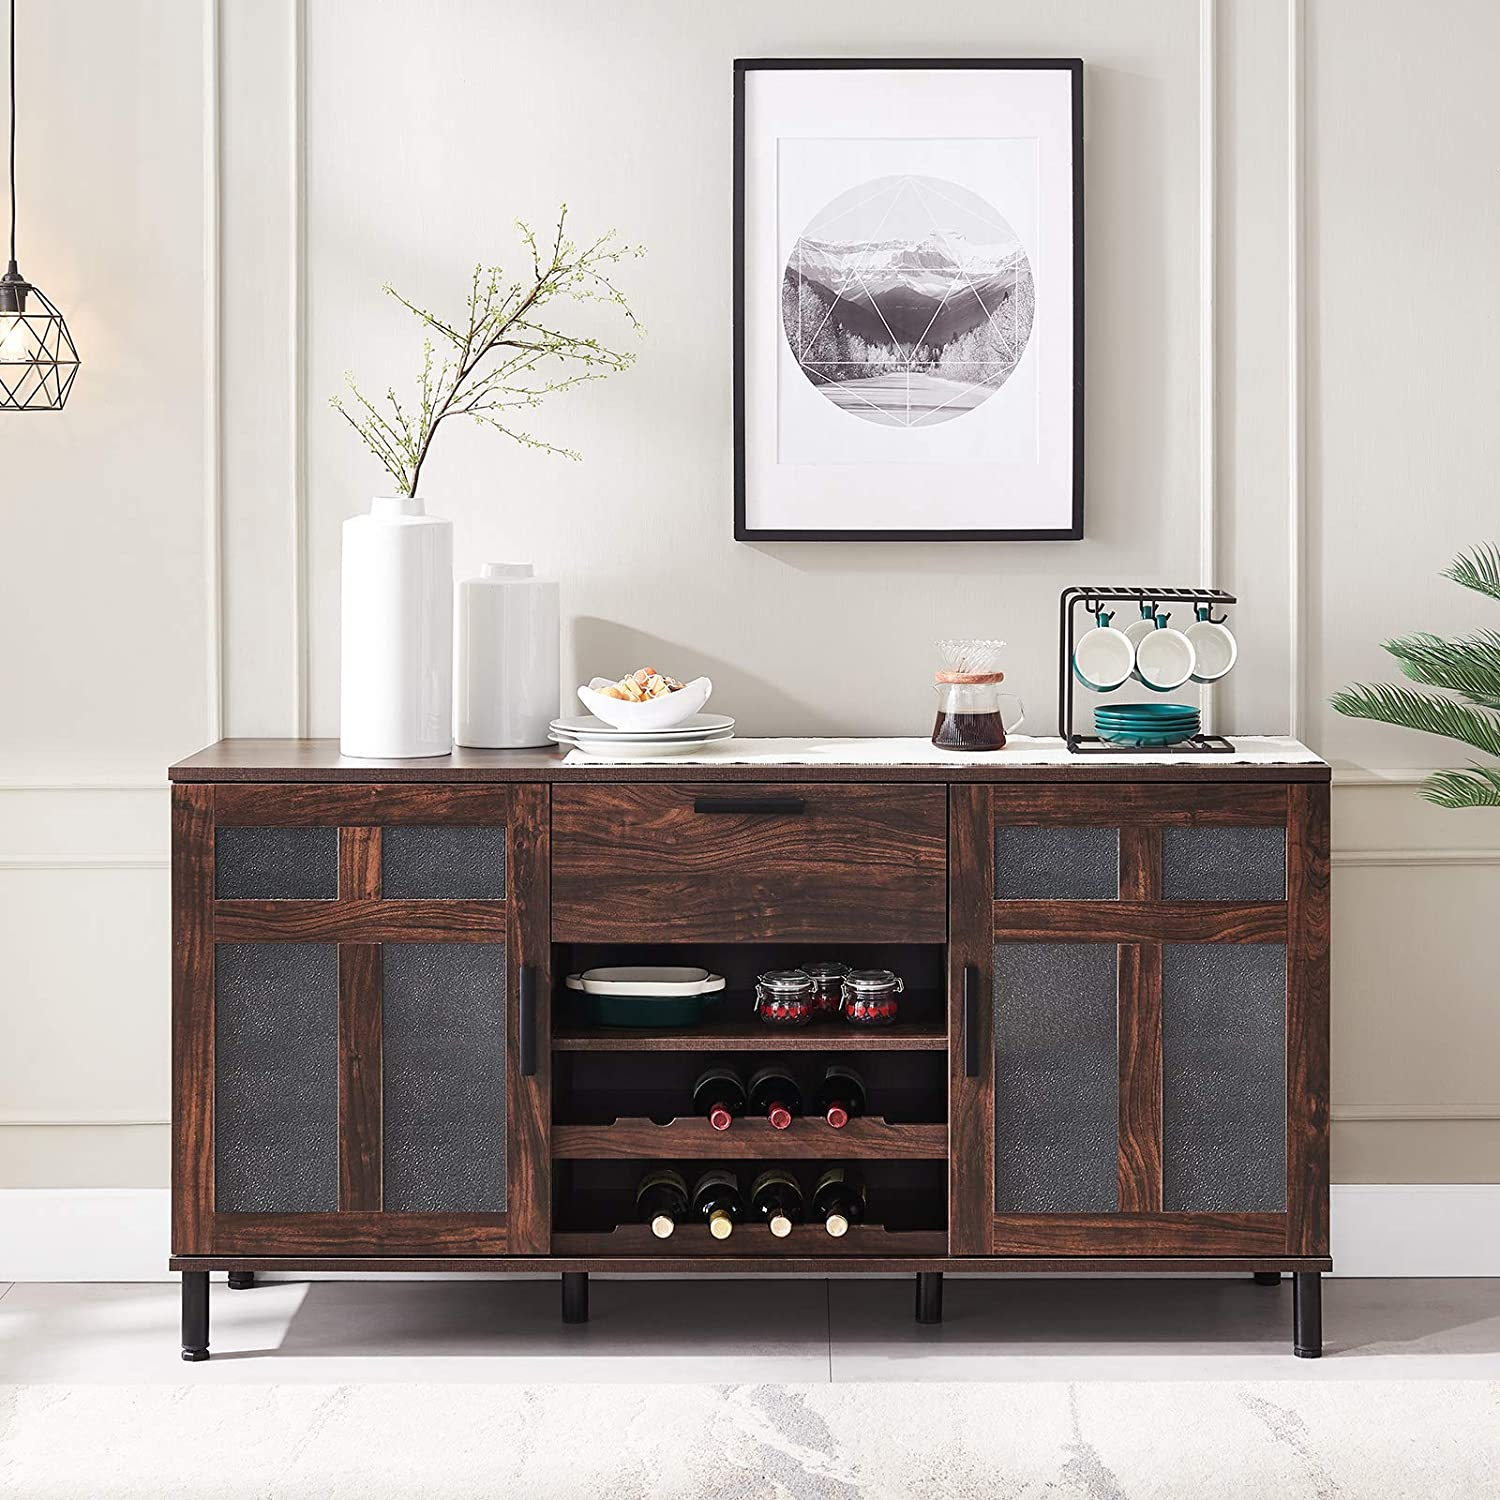 Clack Kitchen Sideboard, Dining Room Buffet Table With Wine Rack